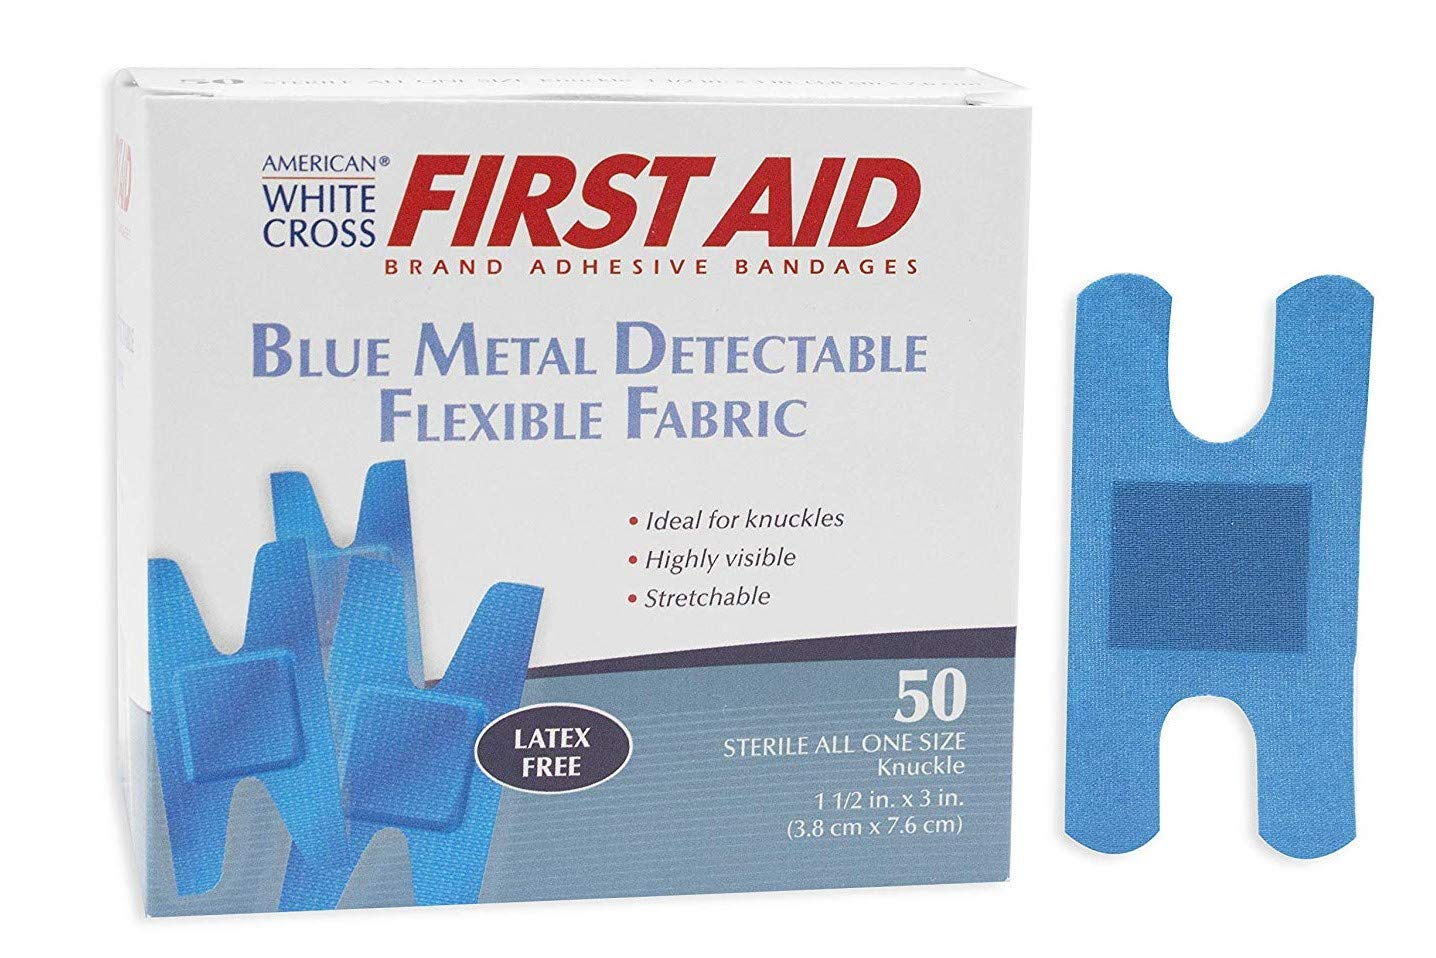 Image of Adhesive Bandages American White Cross Blue Metal Detectable Adhesive Strips, Sterile, Foam, 1-1 per 2' x 3' Knuckle, 2800 per Roll, 6 Roll per Case (Pack of 16800)